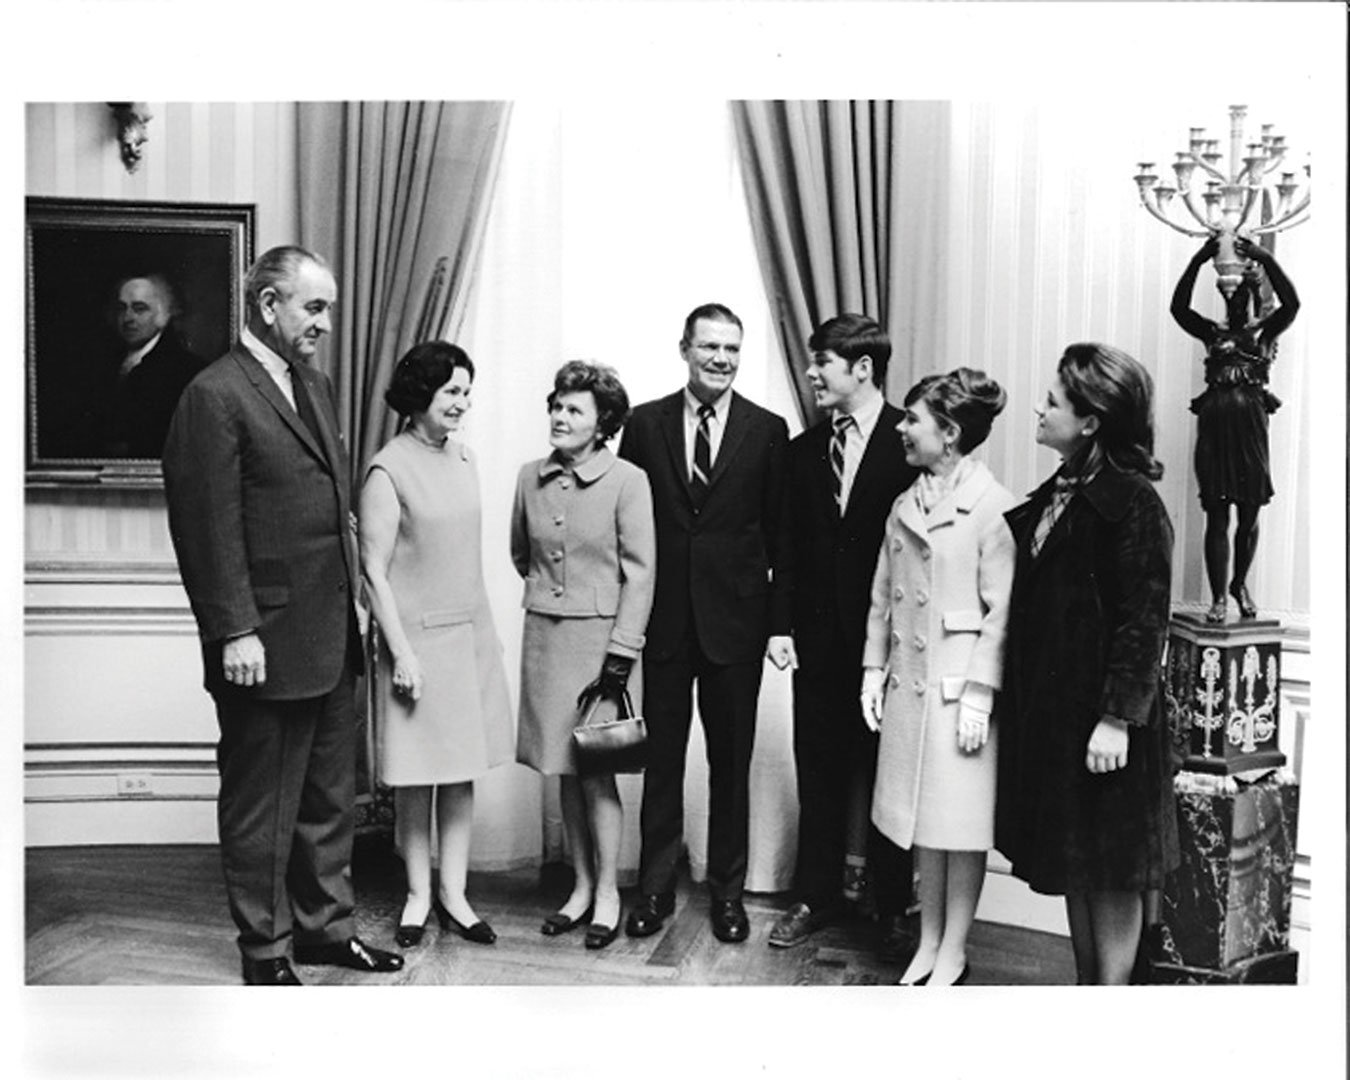 Craig McNamara (third from right) in 1968 at the White House on the day that President Lyndon B. Johnson awarded his father Robert McNamara (fourth from right) the Medal of Freedom. Joining them for the occasion were, from left to right, Lady Bird Johnson, his mother Margaret, and his sisters Margy and Kathleen.